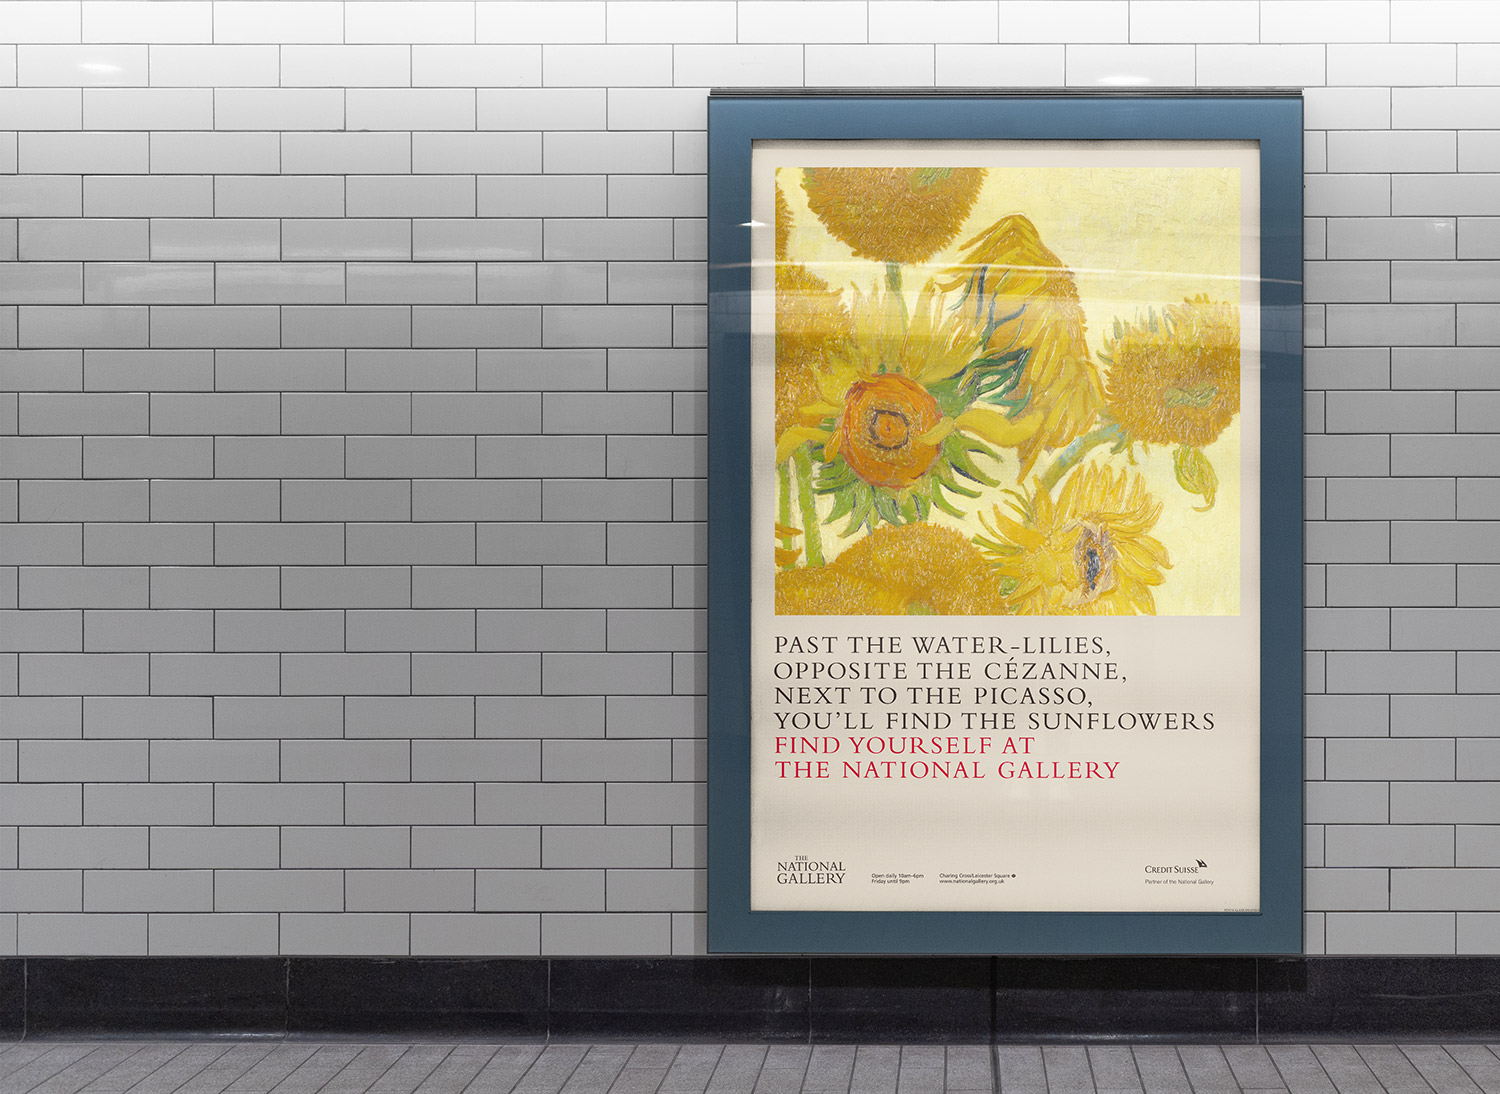 National Gallery advertising